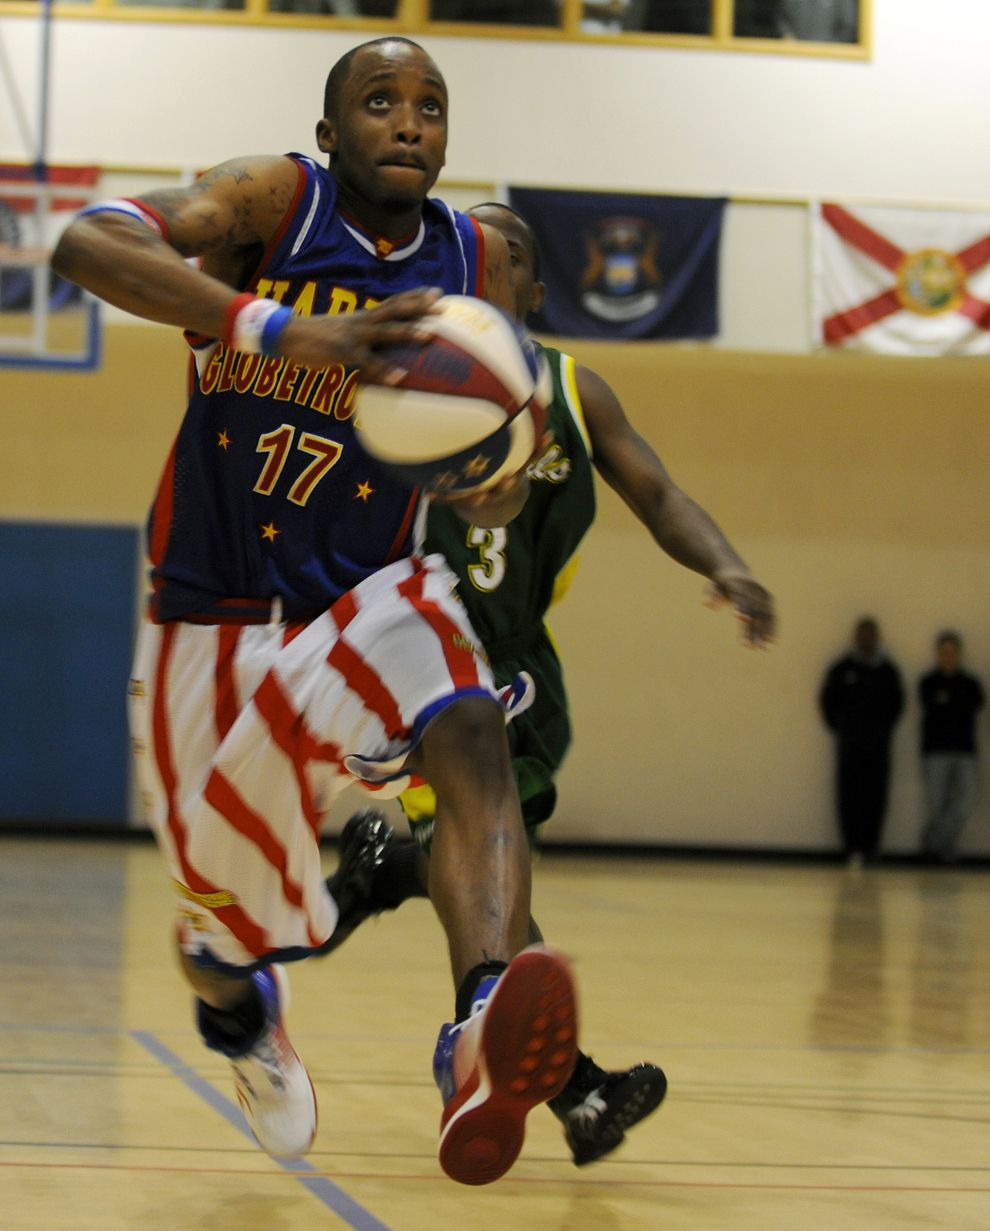 Harlem Globetrotters Play Their First Game